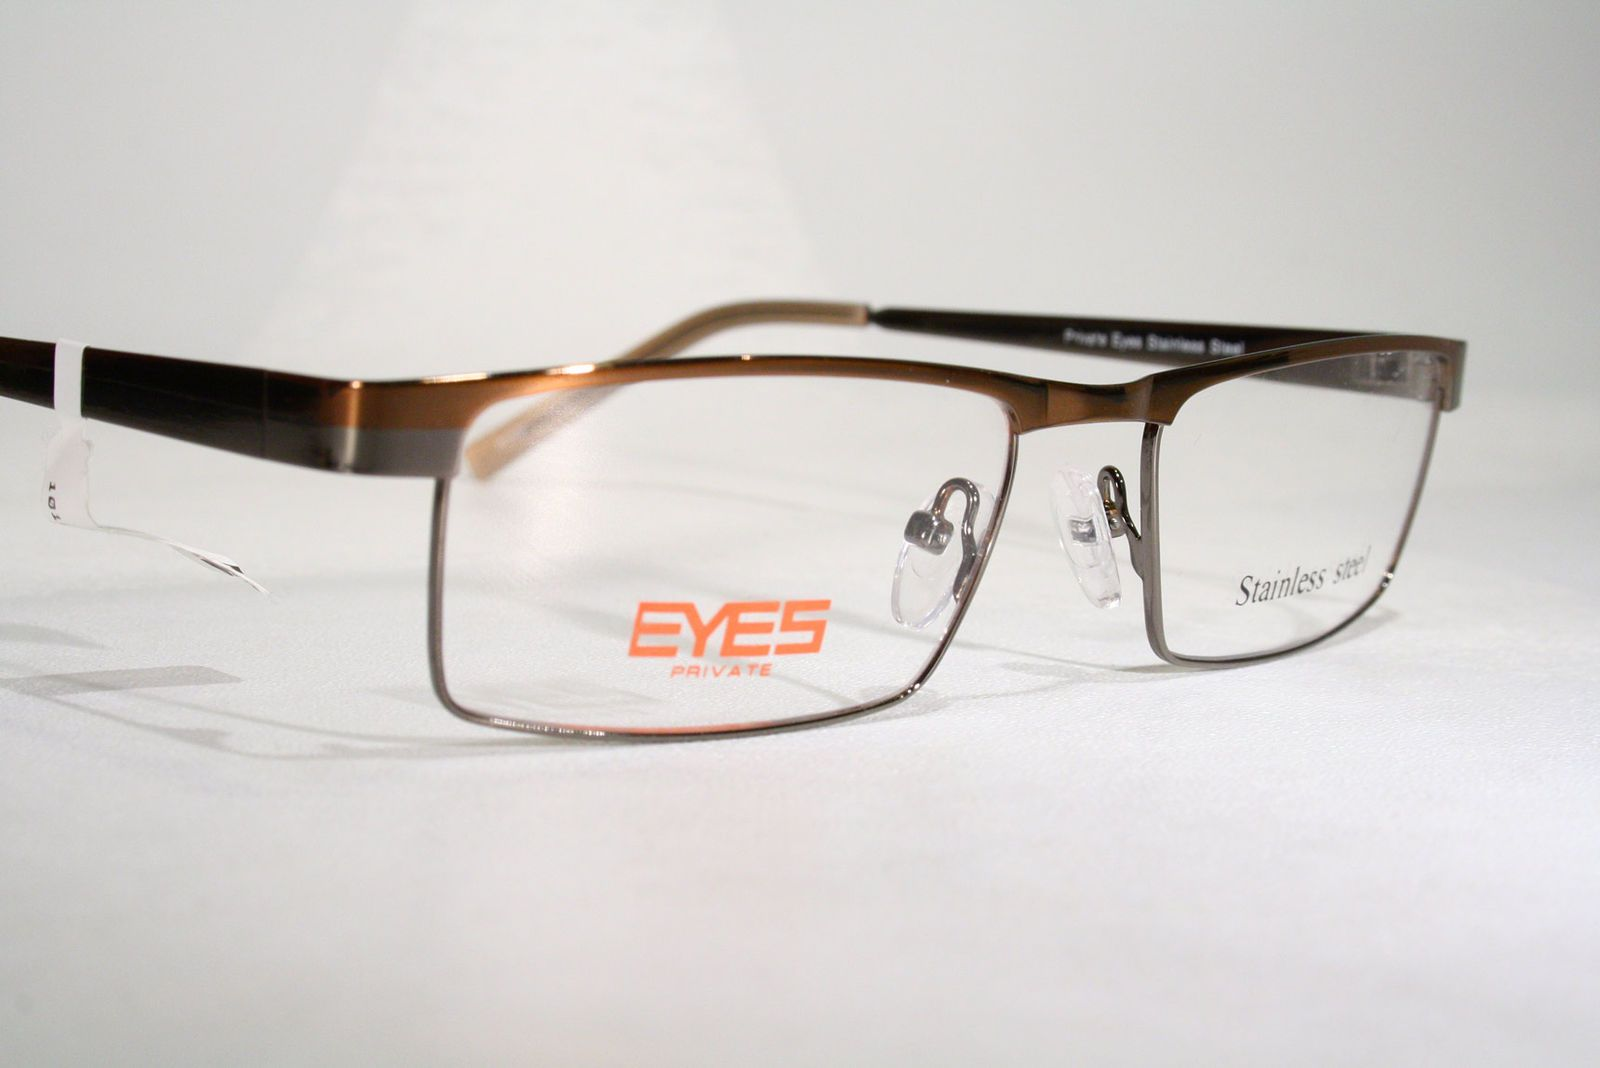 24152554ef New PRIVATE EYES Men s Clubmaster Style Dual Tone Polished Stainless Steel  Glasses Eyeglass Frames   eBay (RipVanW)